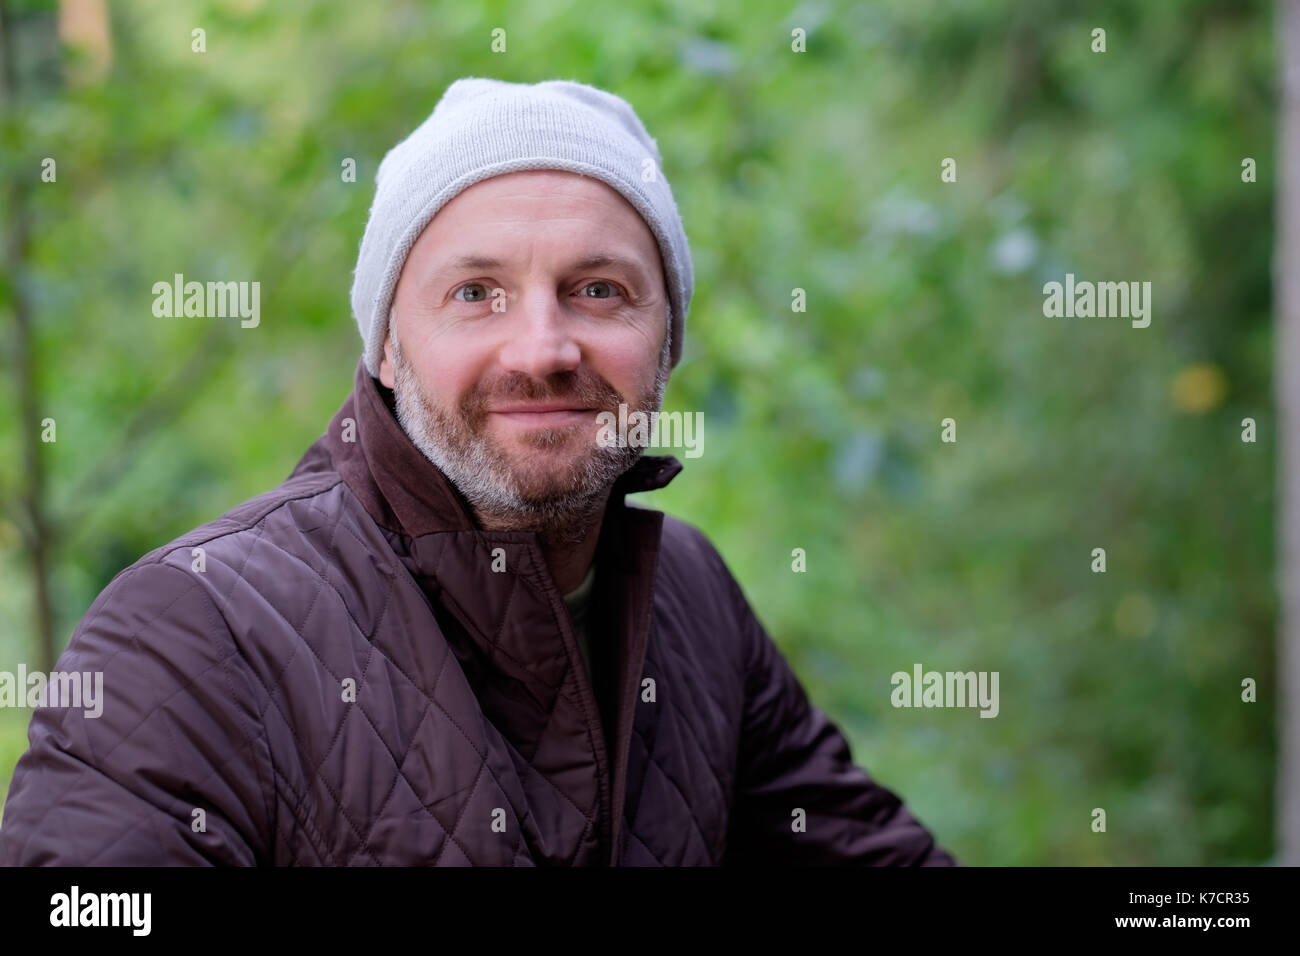 handsome mature man smiling in warm hat and jacket looking at camera - Stock Image